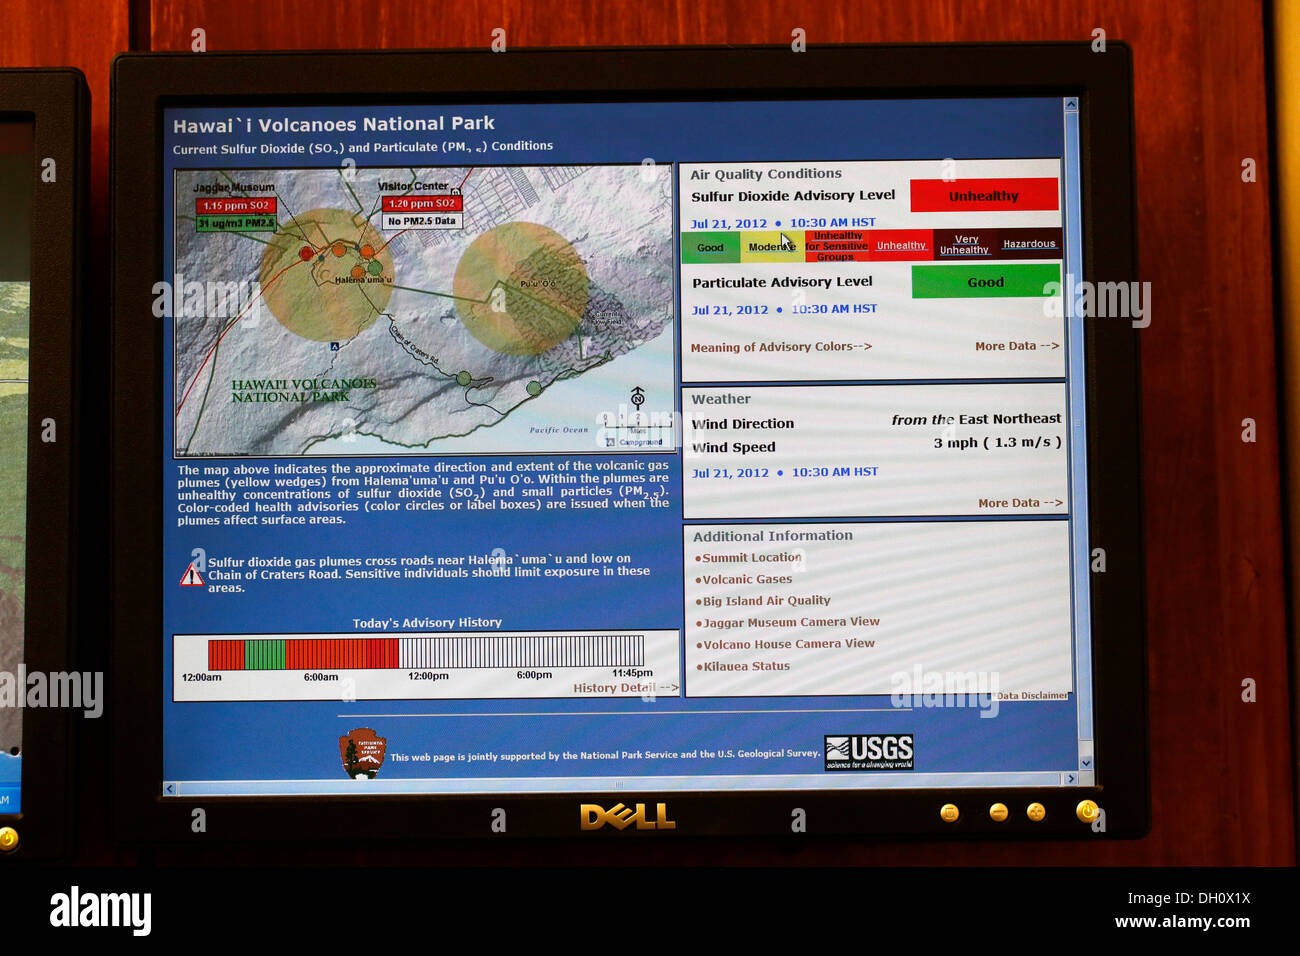 Screen showing toxic gas emissions, a high concentration of sulfur dioxide, SO2, in the Kilauea volcano - Stock Image